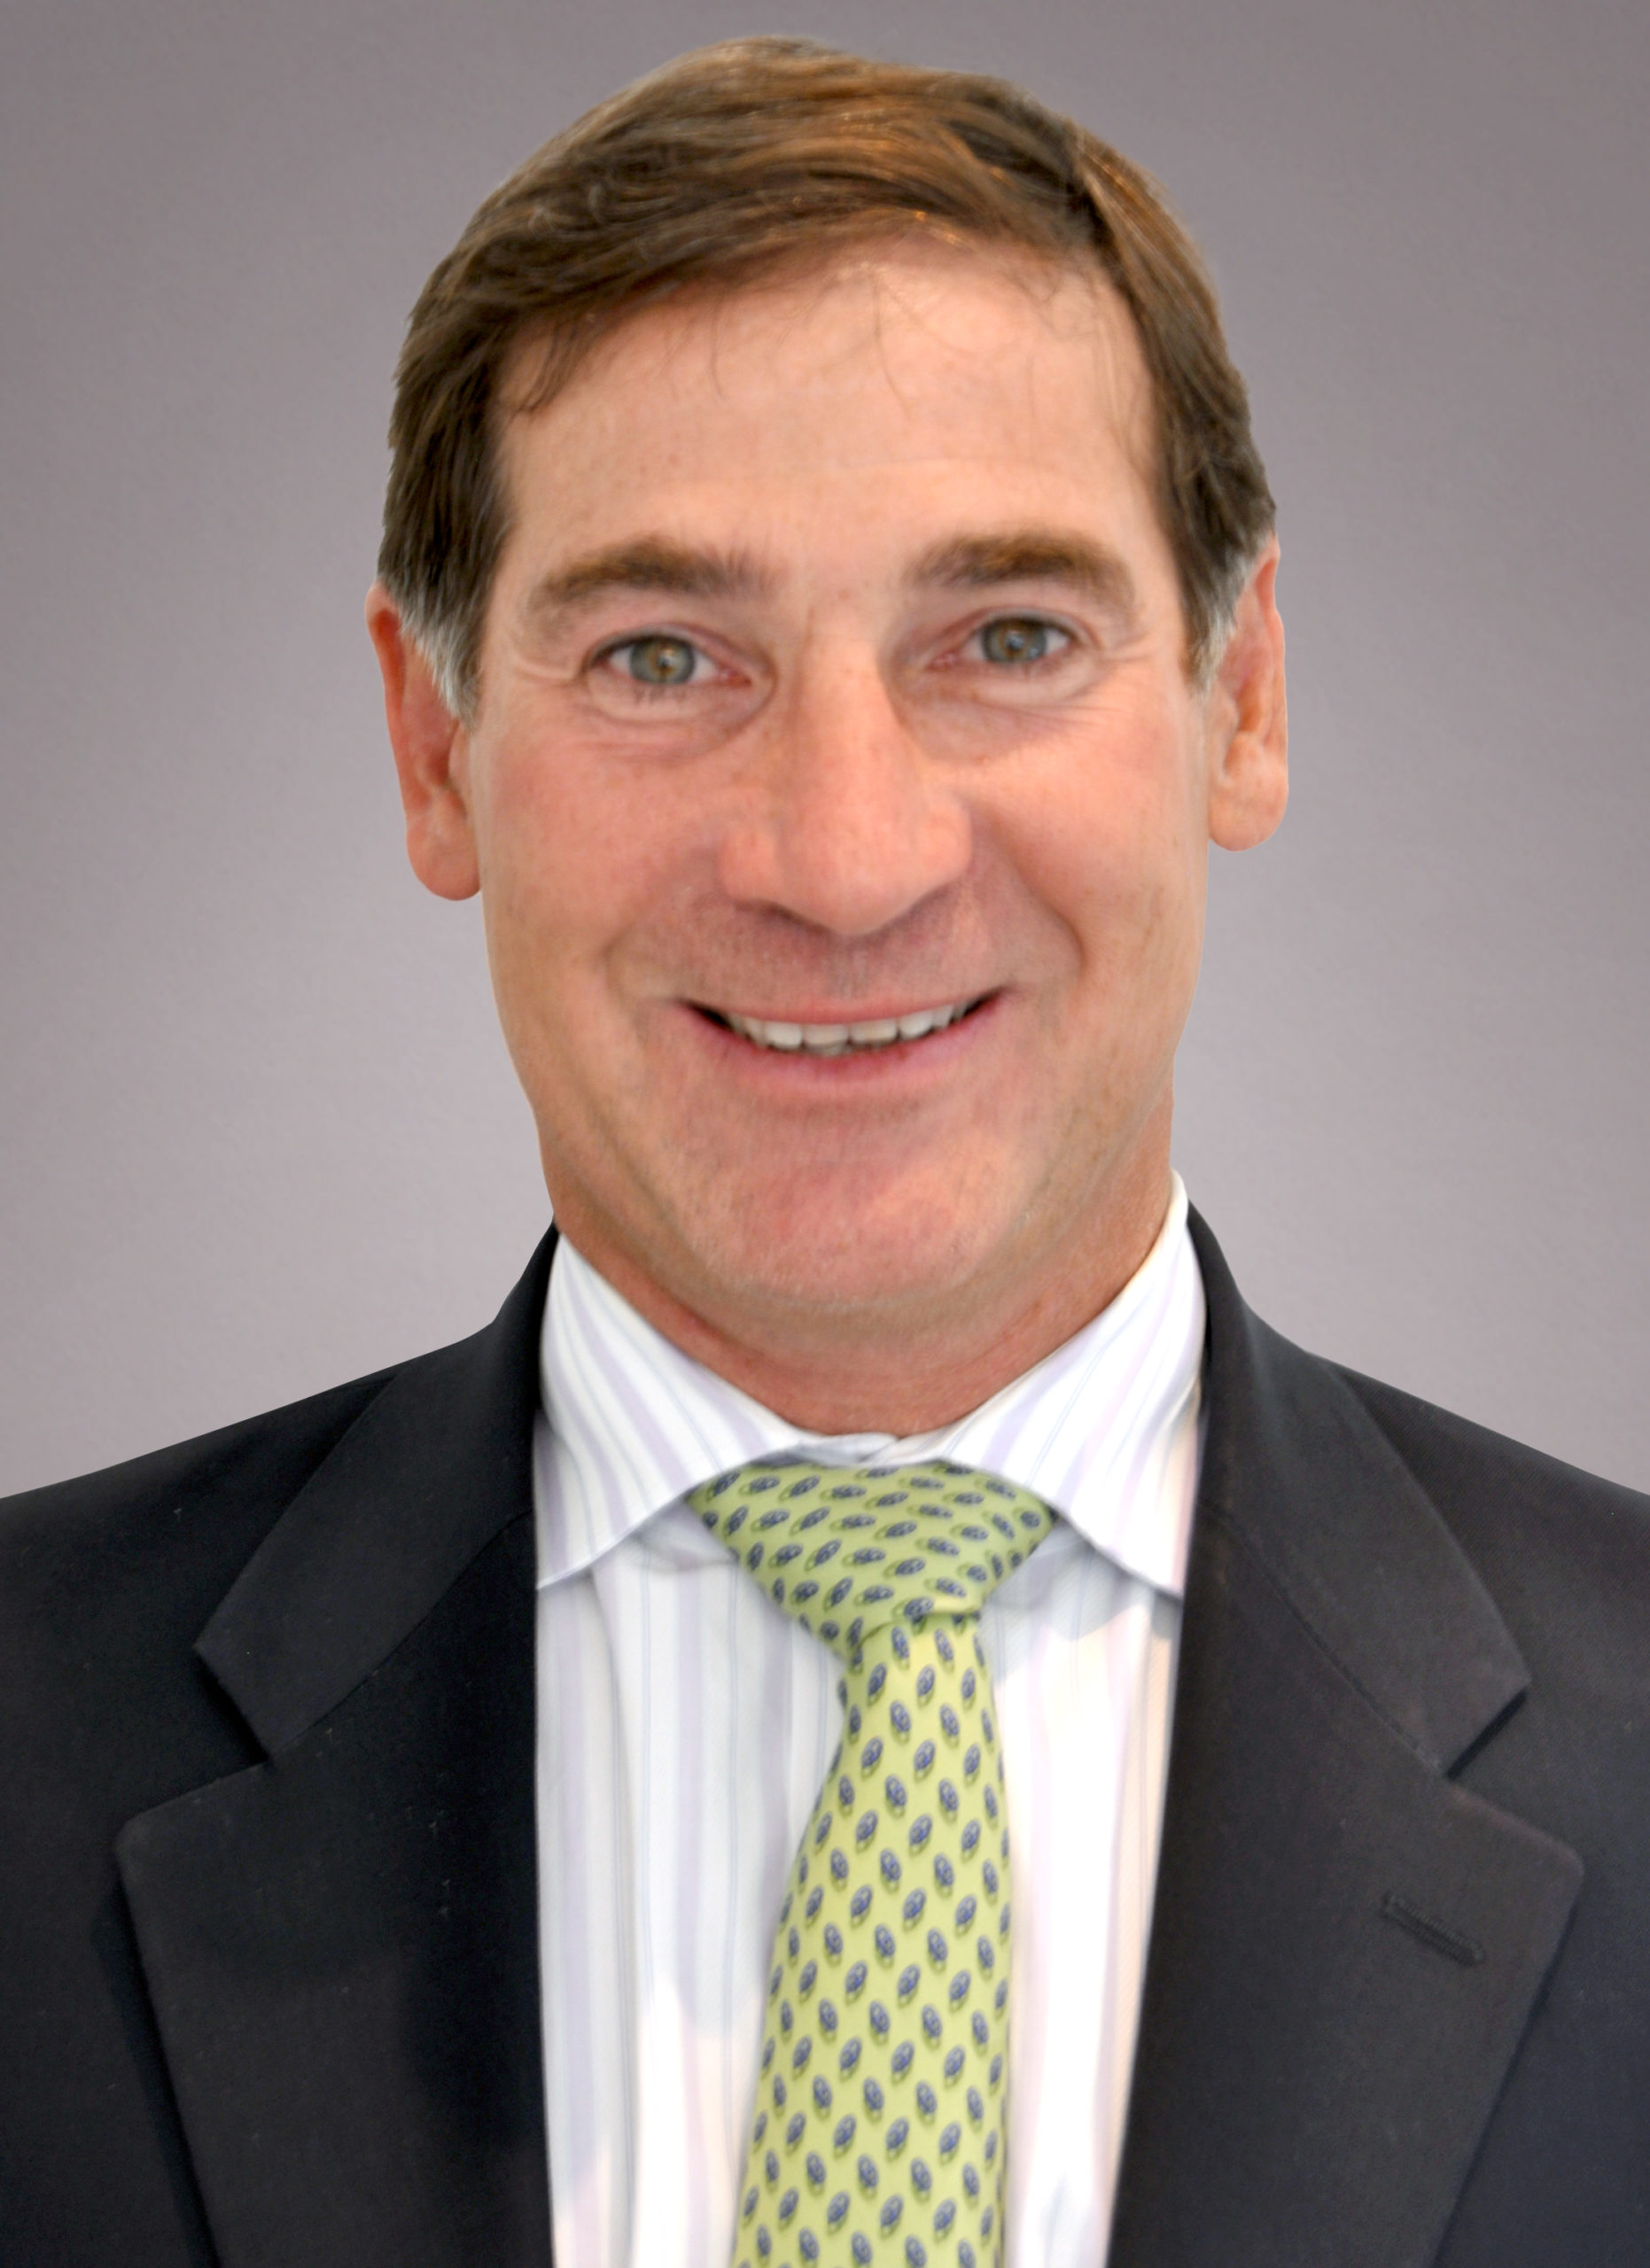 Philip O'Connell, Executive Managing Director of the Hamptons for Brown Harris Stevens.